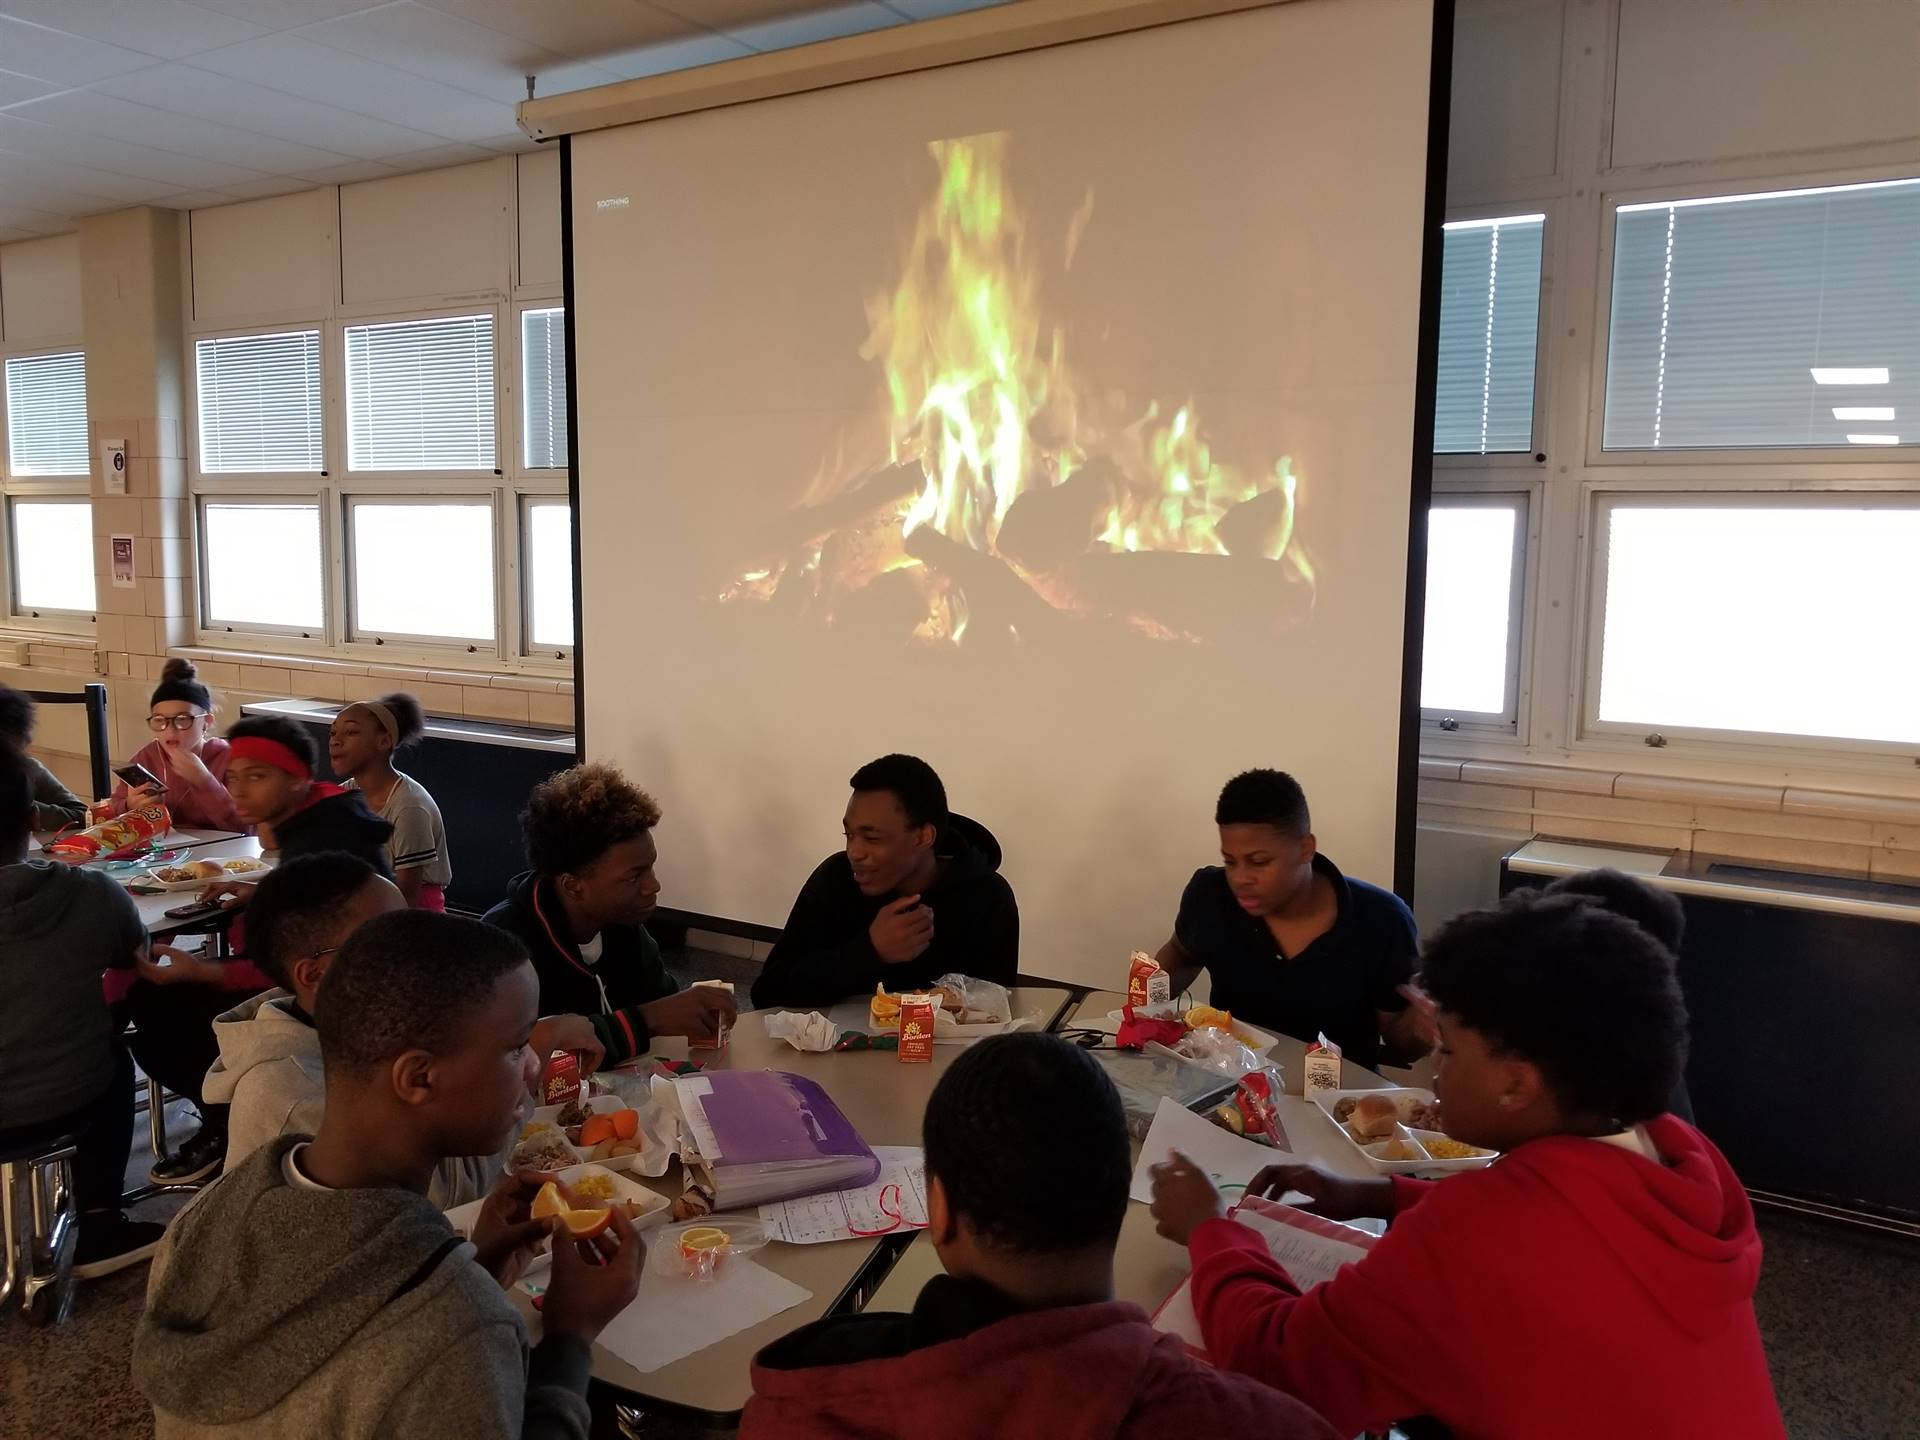 Students dining in the cafeteria.